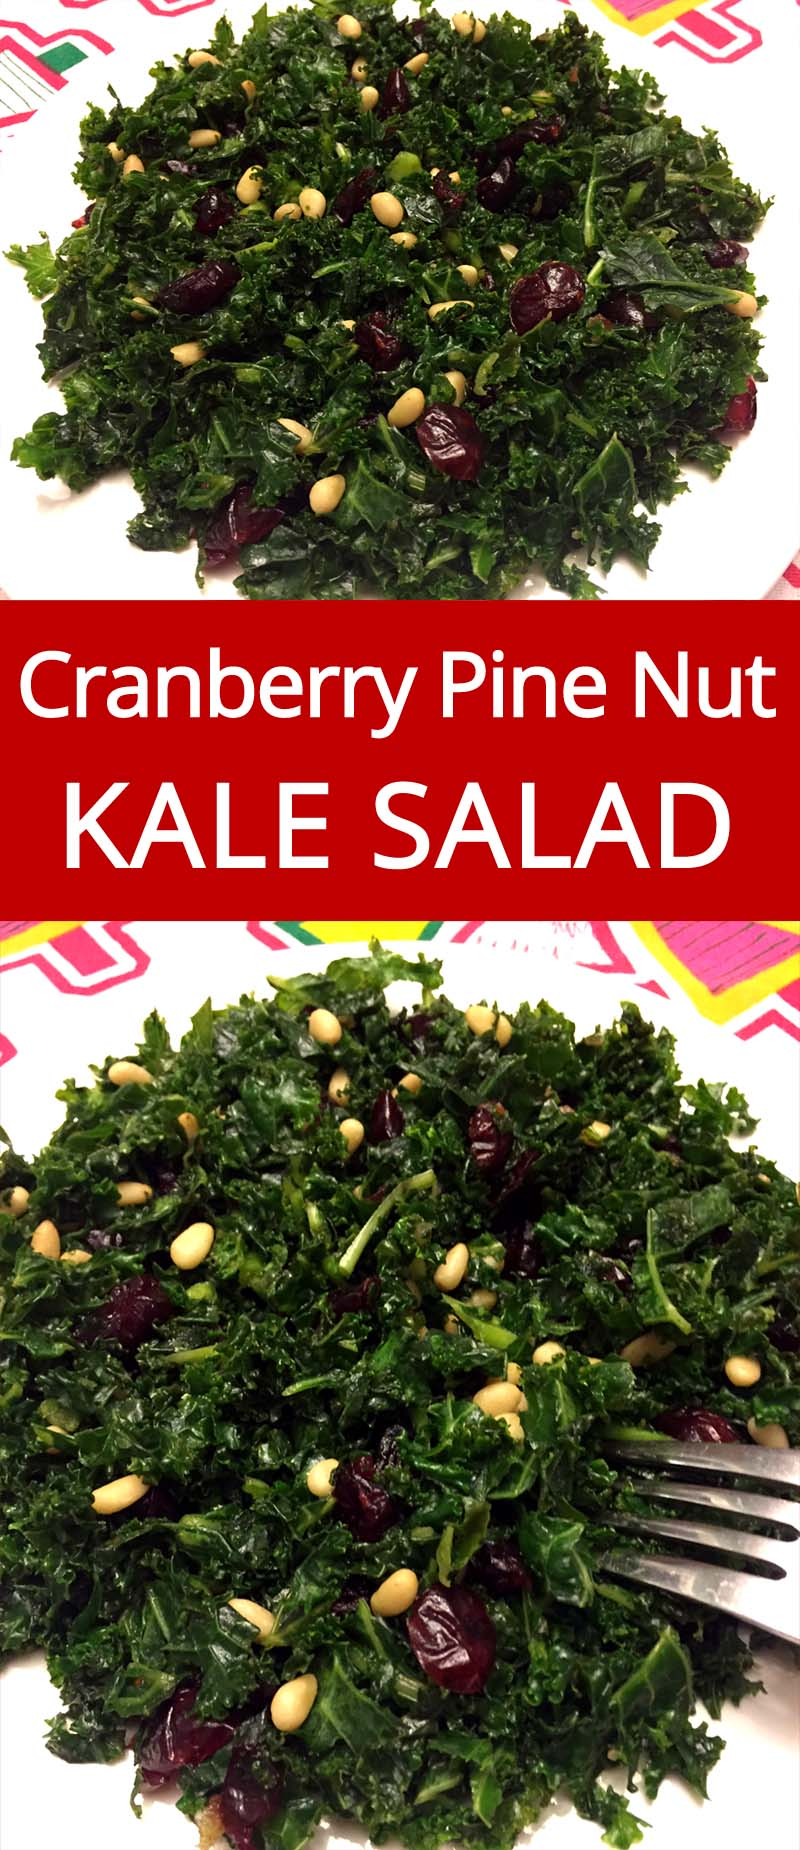 Kale Salad Recipe With Cranberries And Pine Nuts - what a great way to eat more kale! Easy and yummy! | MelanieCooks.com